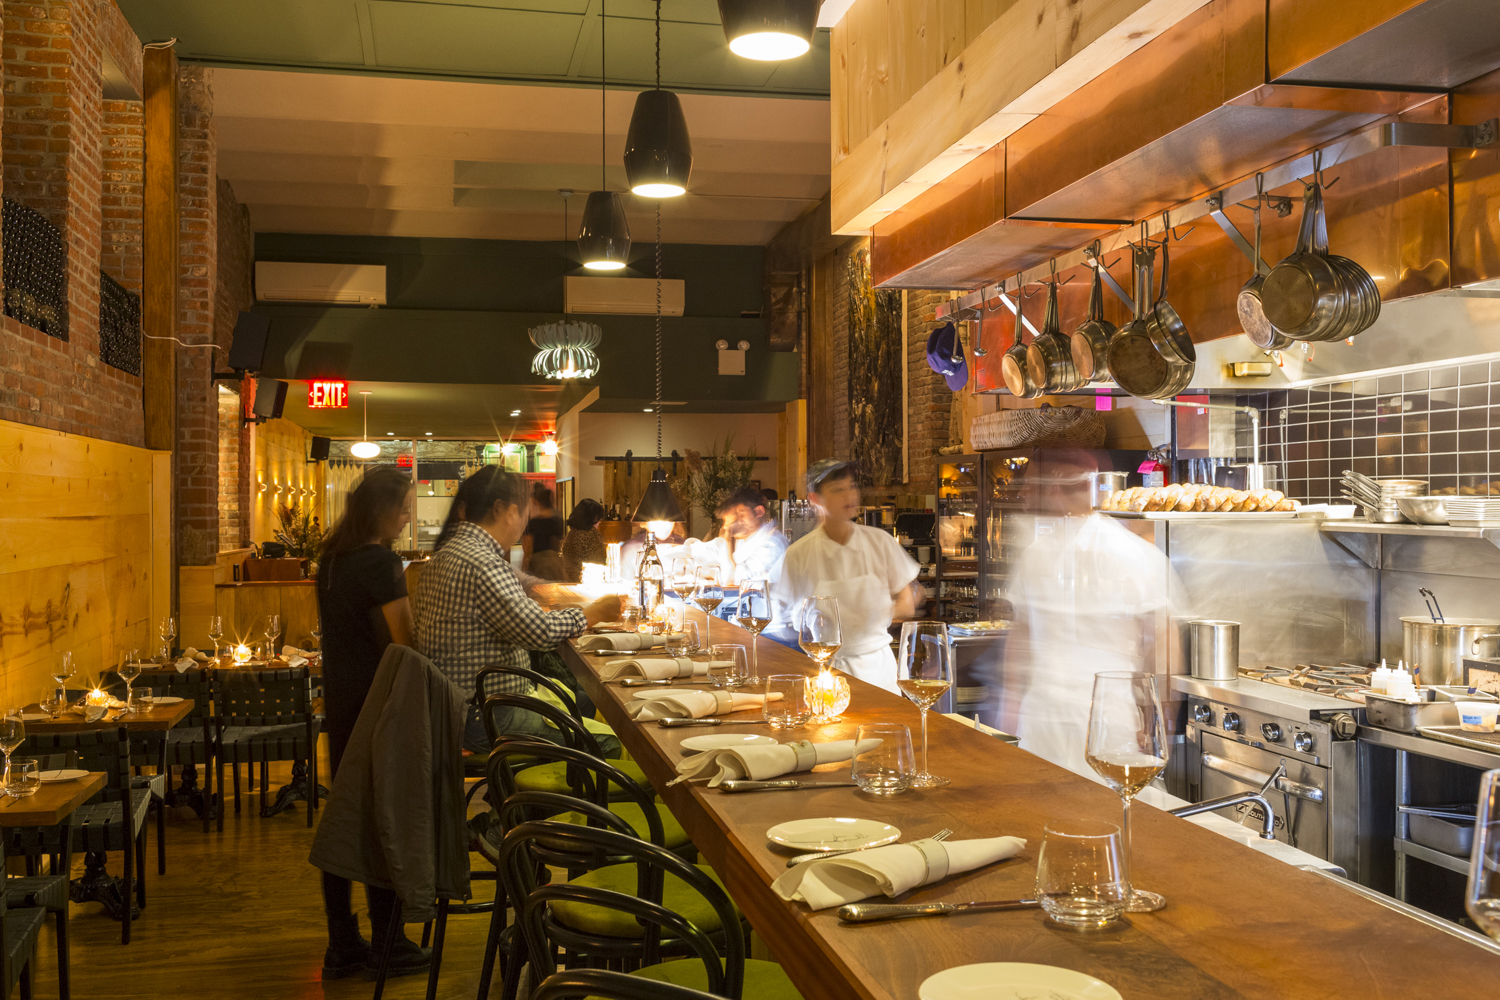 The open kitchen and dining bar at Lowlife, 178 Stanton Street, NY, NY 10002 PHOTO: Melissa Goodwin for Observer